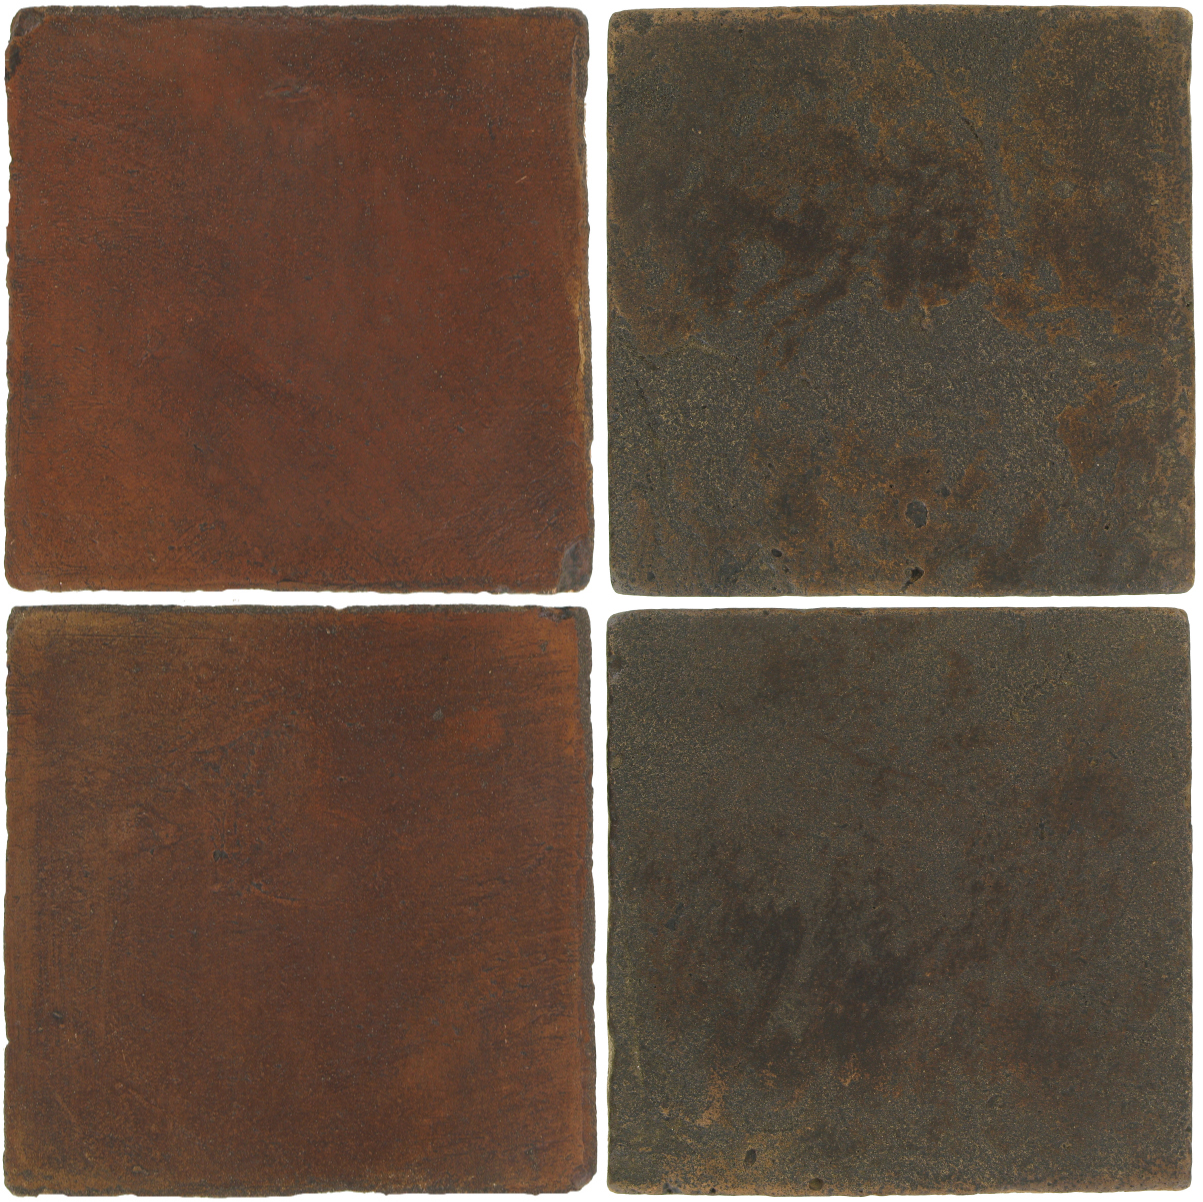 Pedralbes Antique Terracotta  2 Color Combinations  OHS-PSOW Old World + VTG-PSCO Cologne Brown